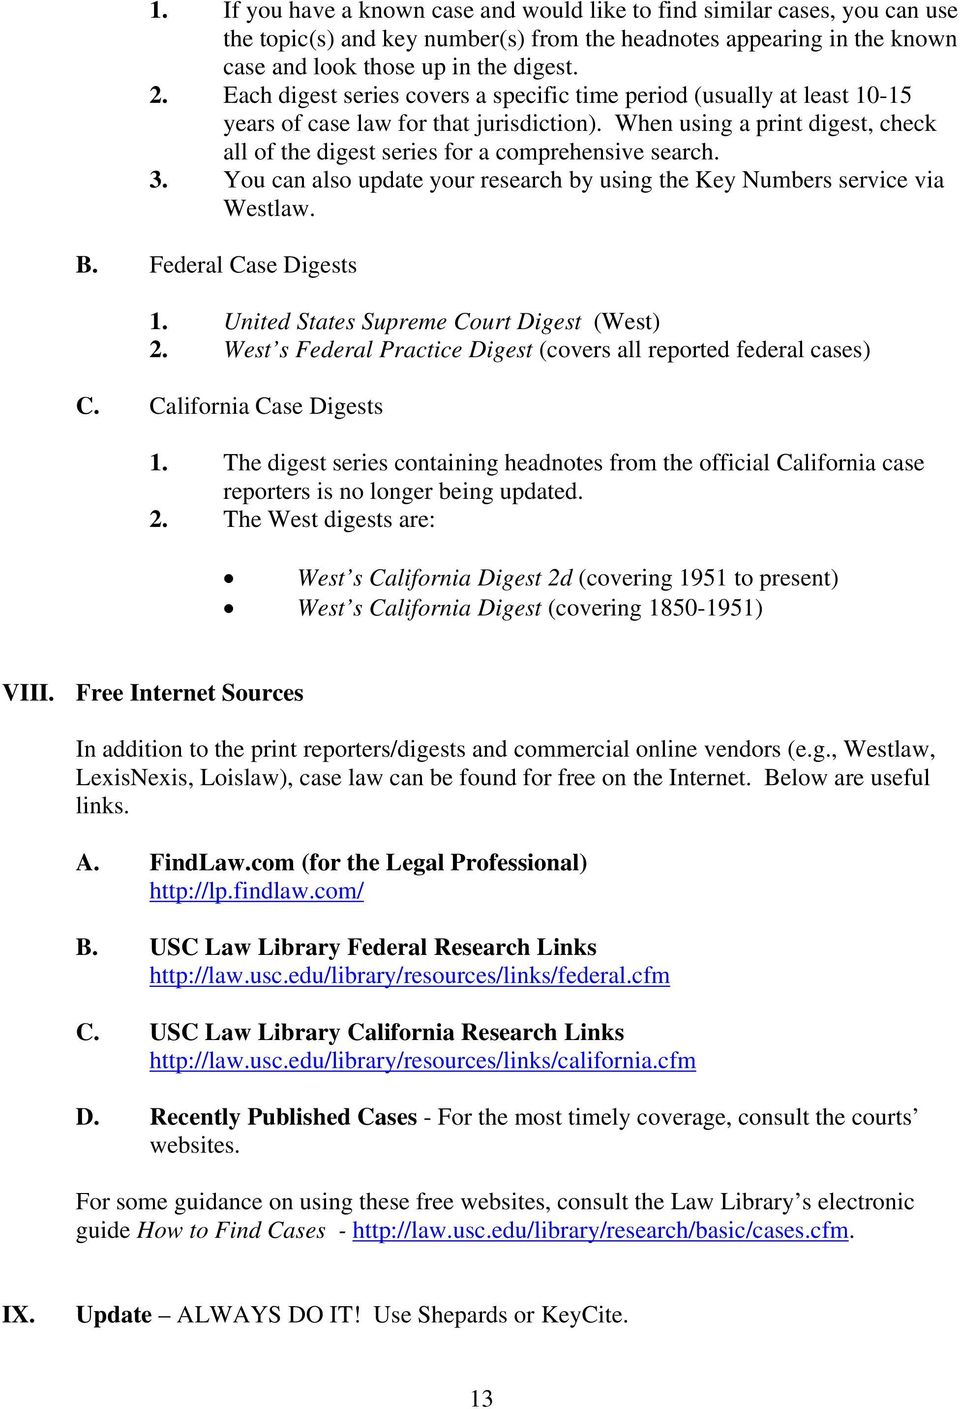 3. You can also update your research by using the Key Numbers service via Westlaw. B. Federal Case Digests 1. United States Supreme Court Digest (West) 2.